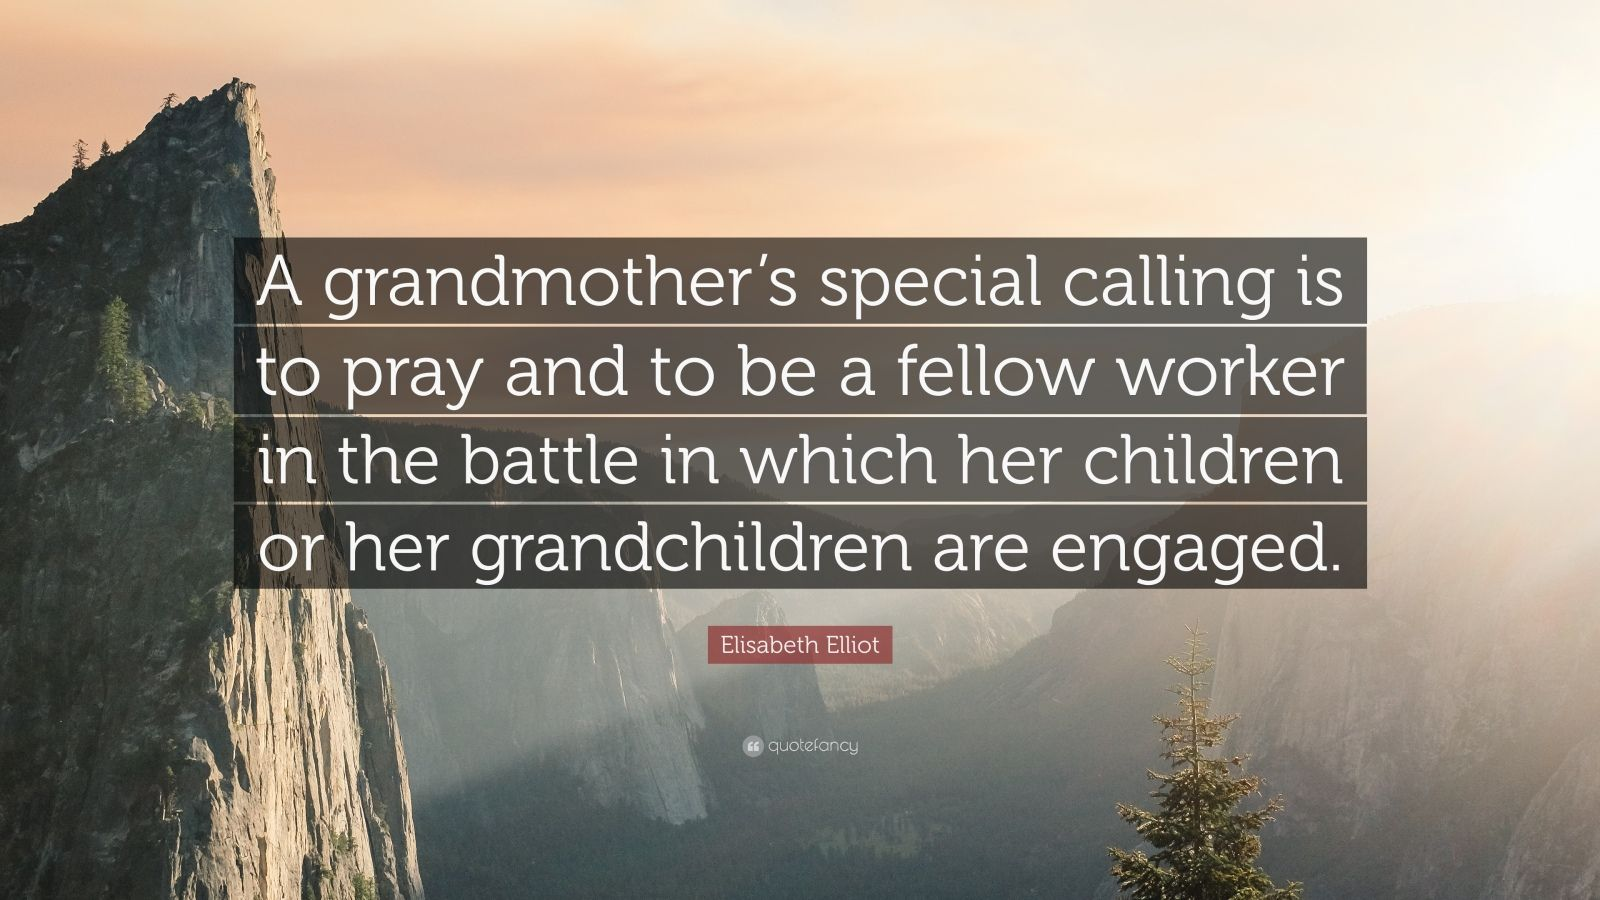 Beautiful Wallpapers With Quotes Of Life Elisabeth Elliot Quote A Grandmother S Special Calling